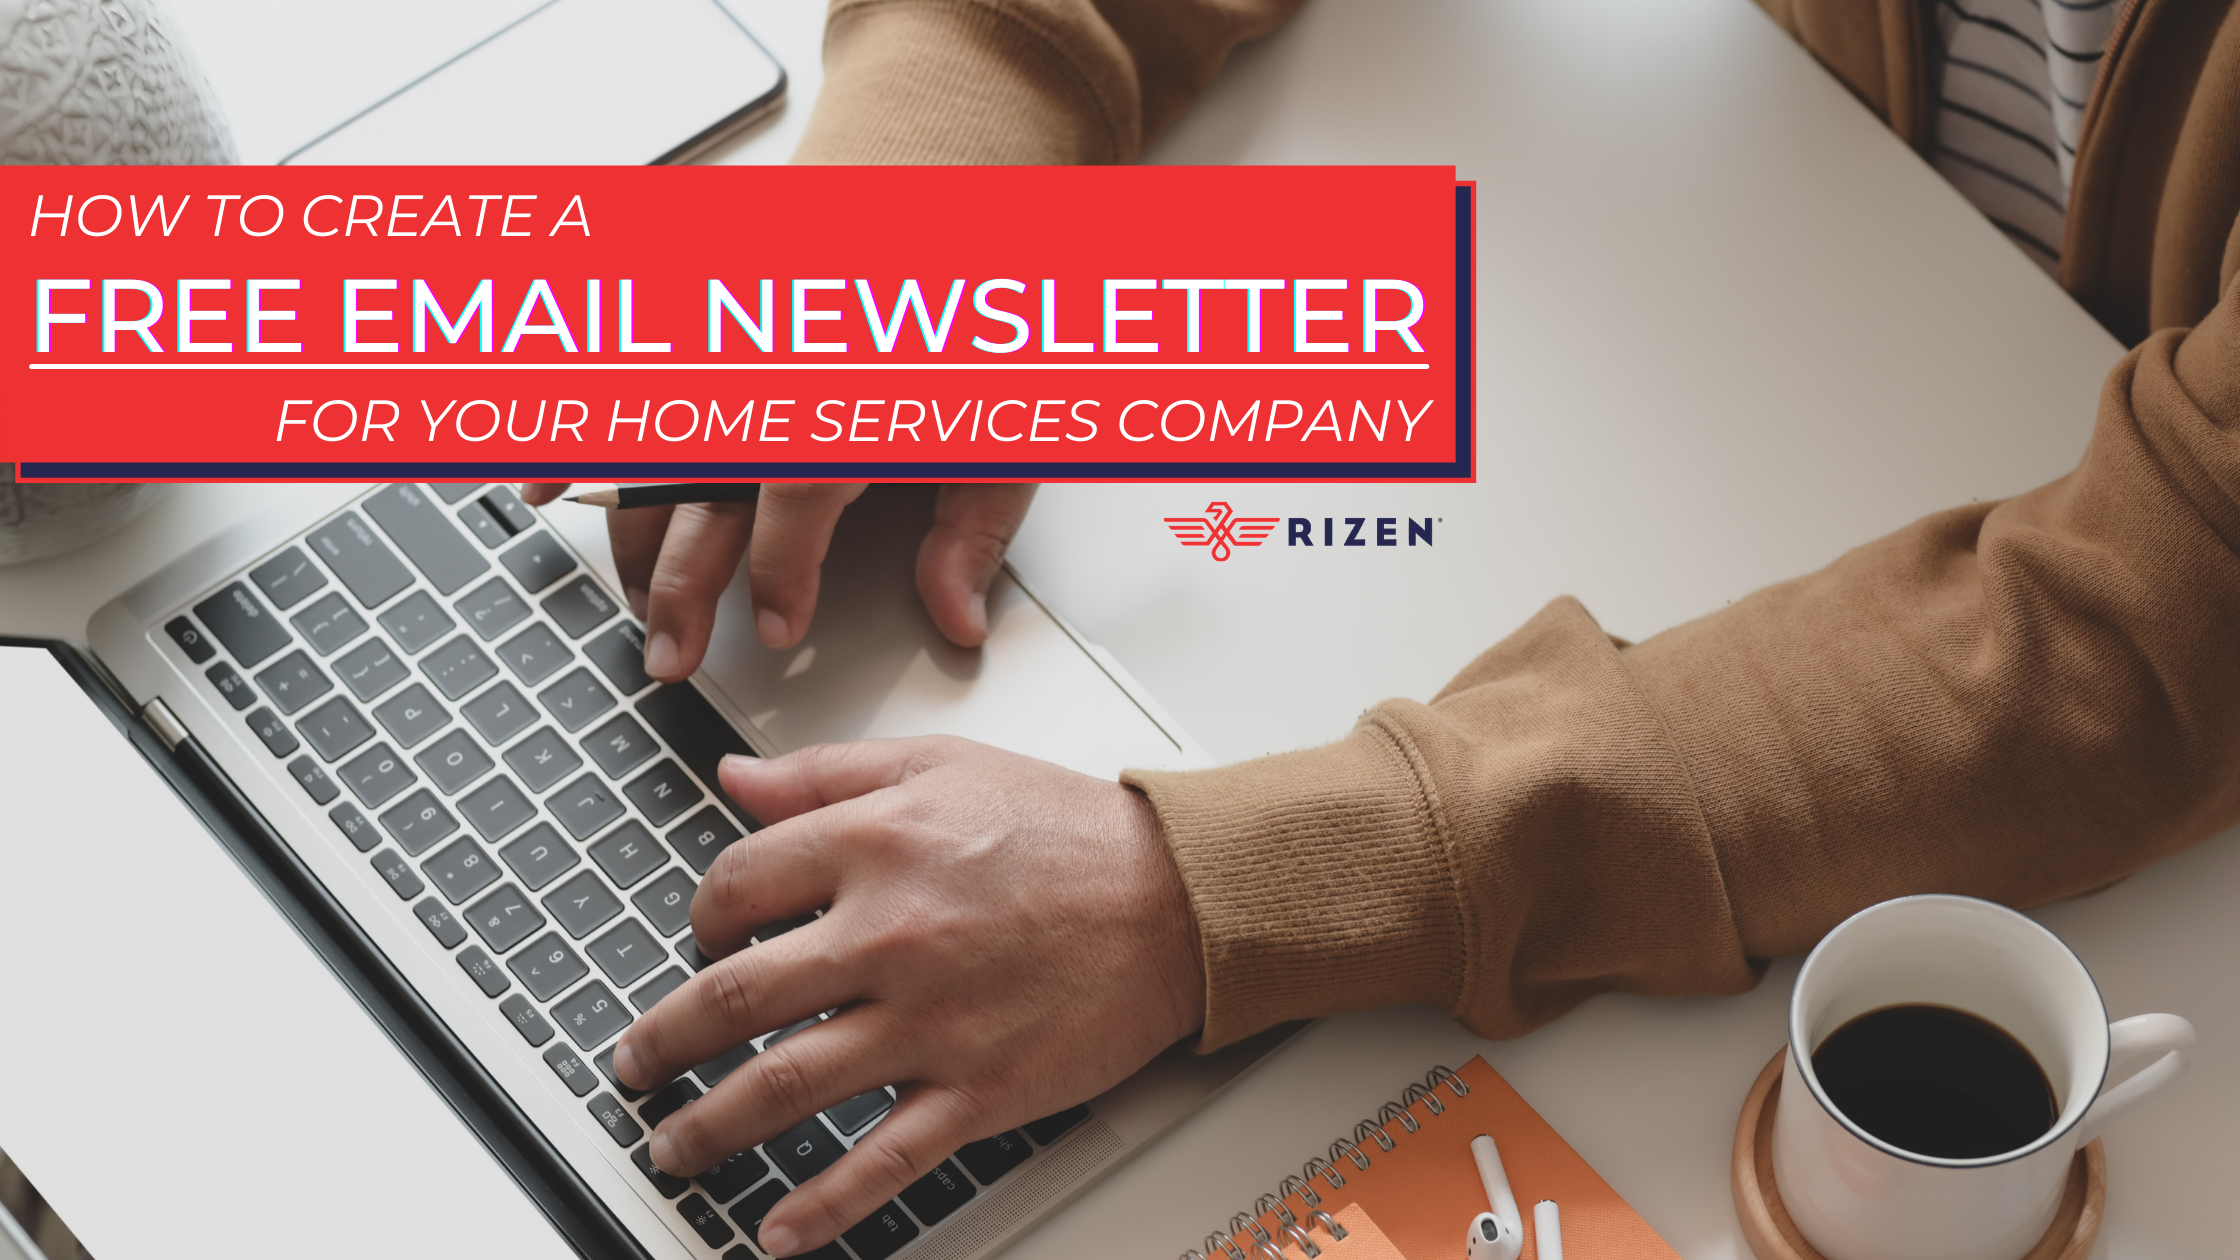 Create a Free Email Newsletter Hero